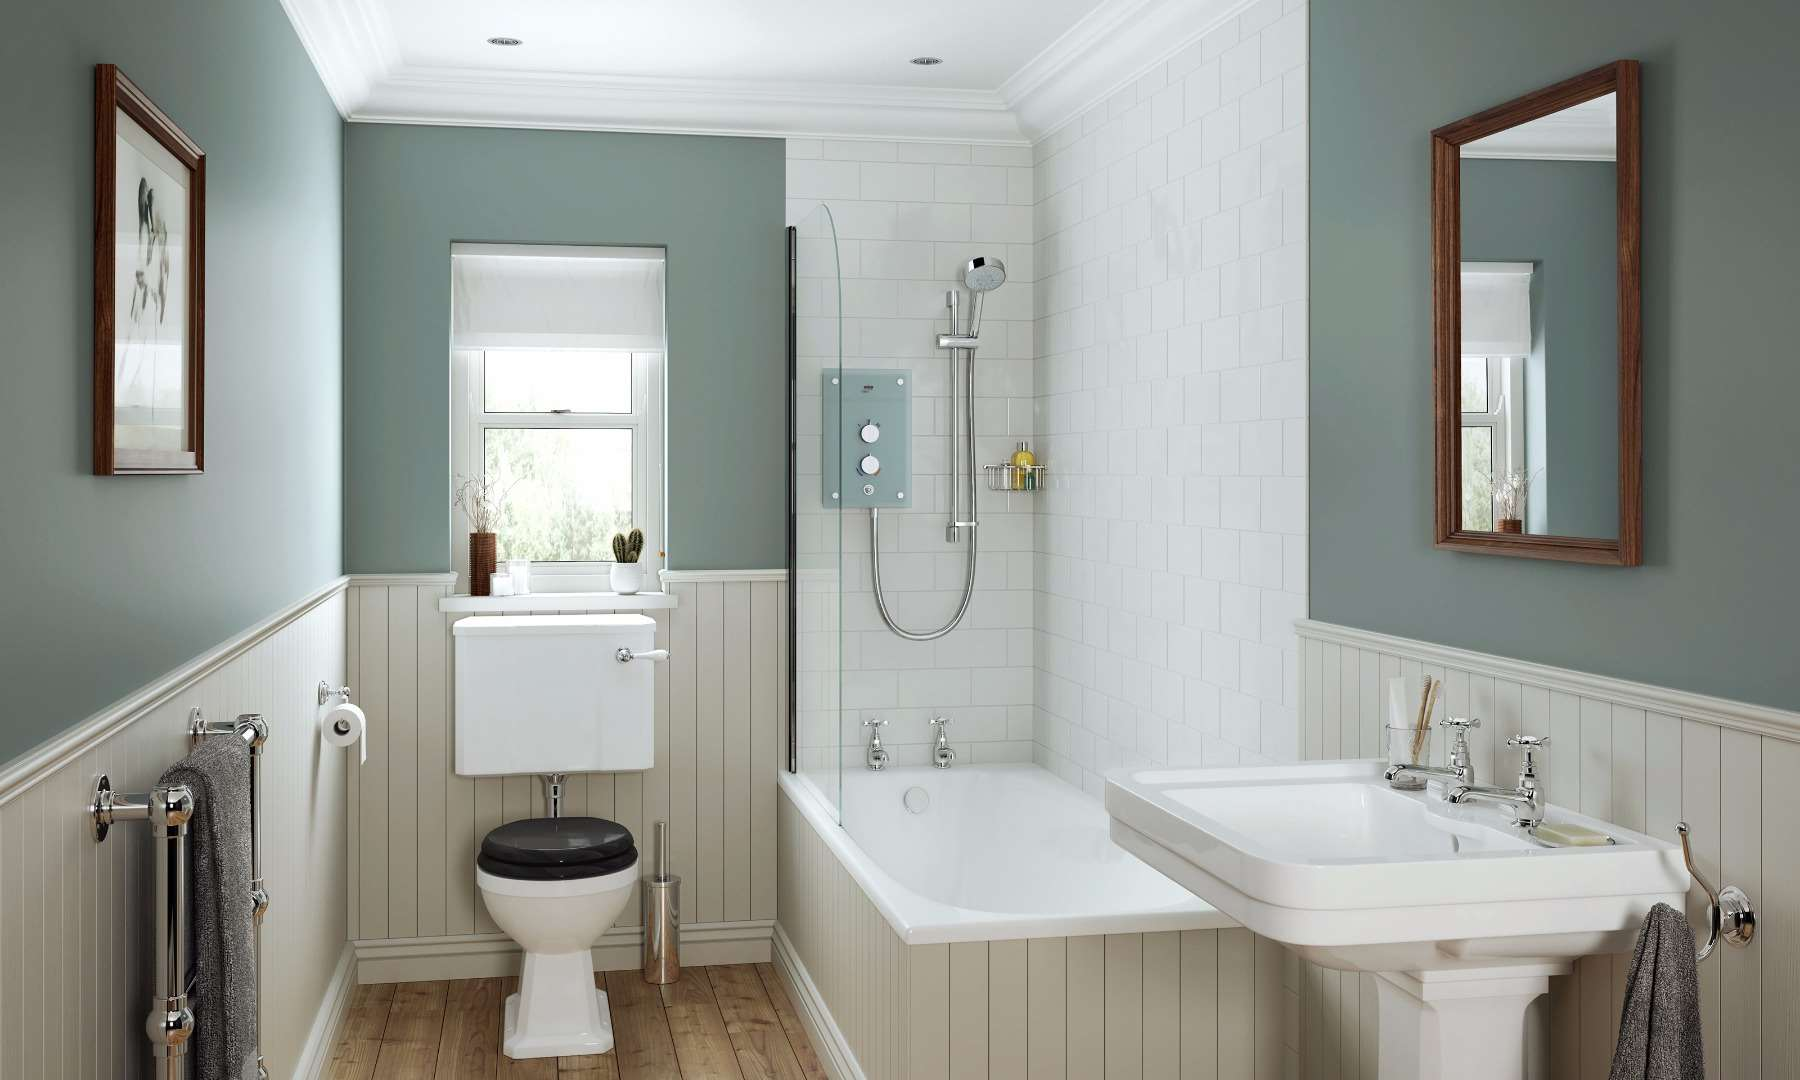 mira-showers-small-traditional-bathroom-roomset-03-galena. & Bathroom Wall Décor ideas | Mira showers by Mira Showers